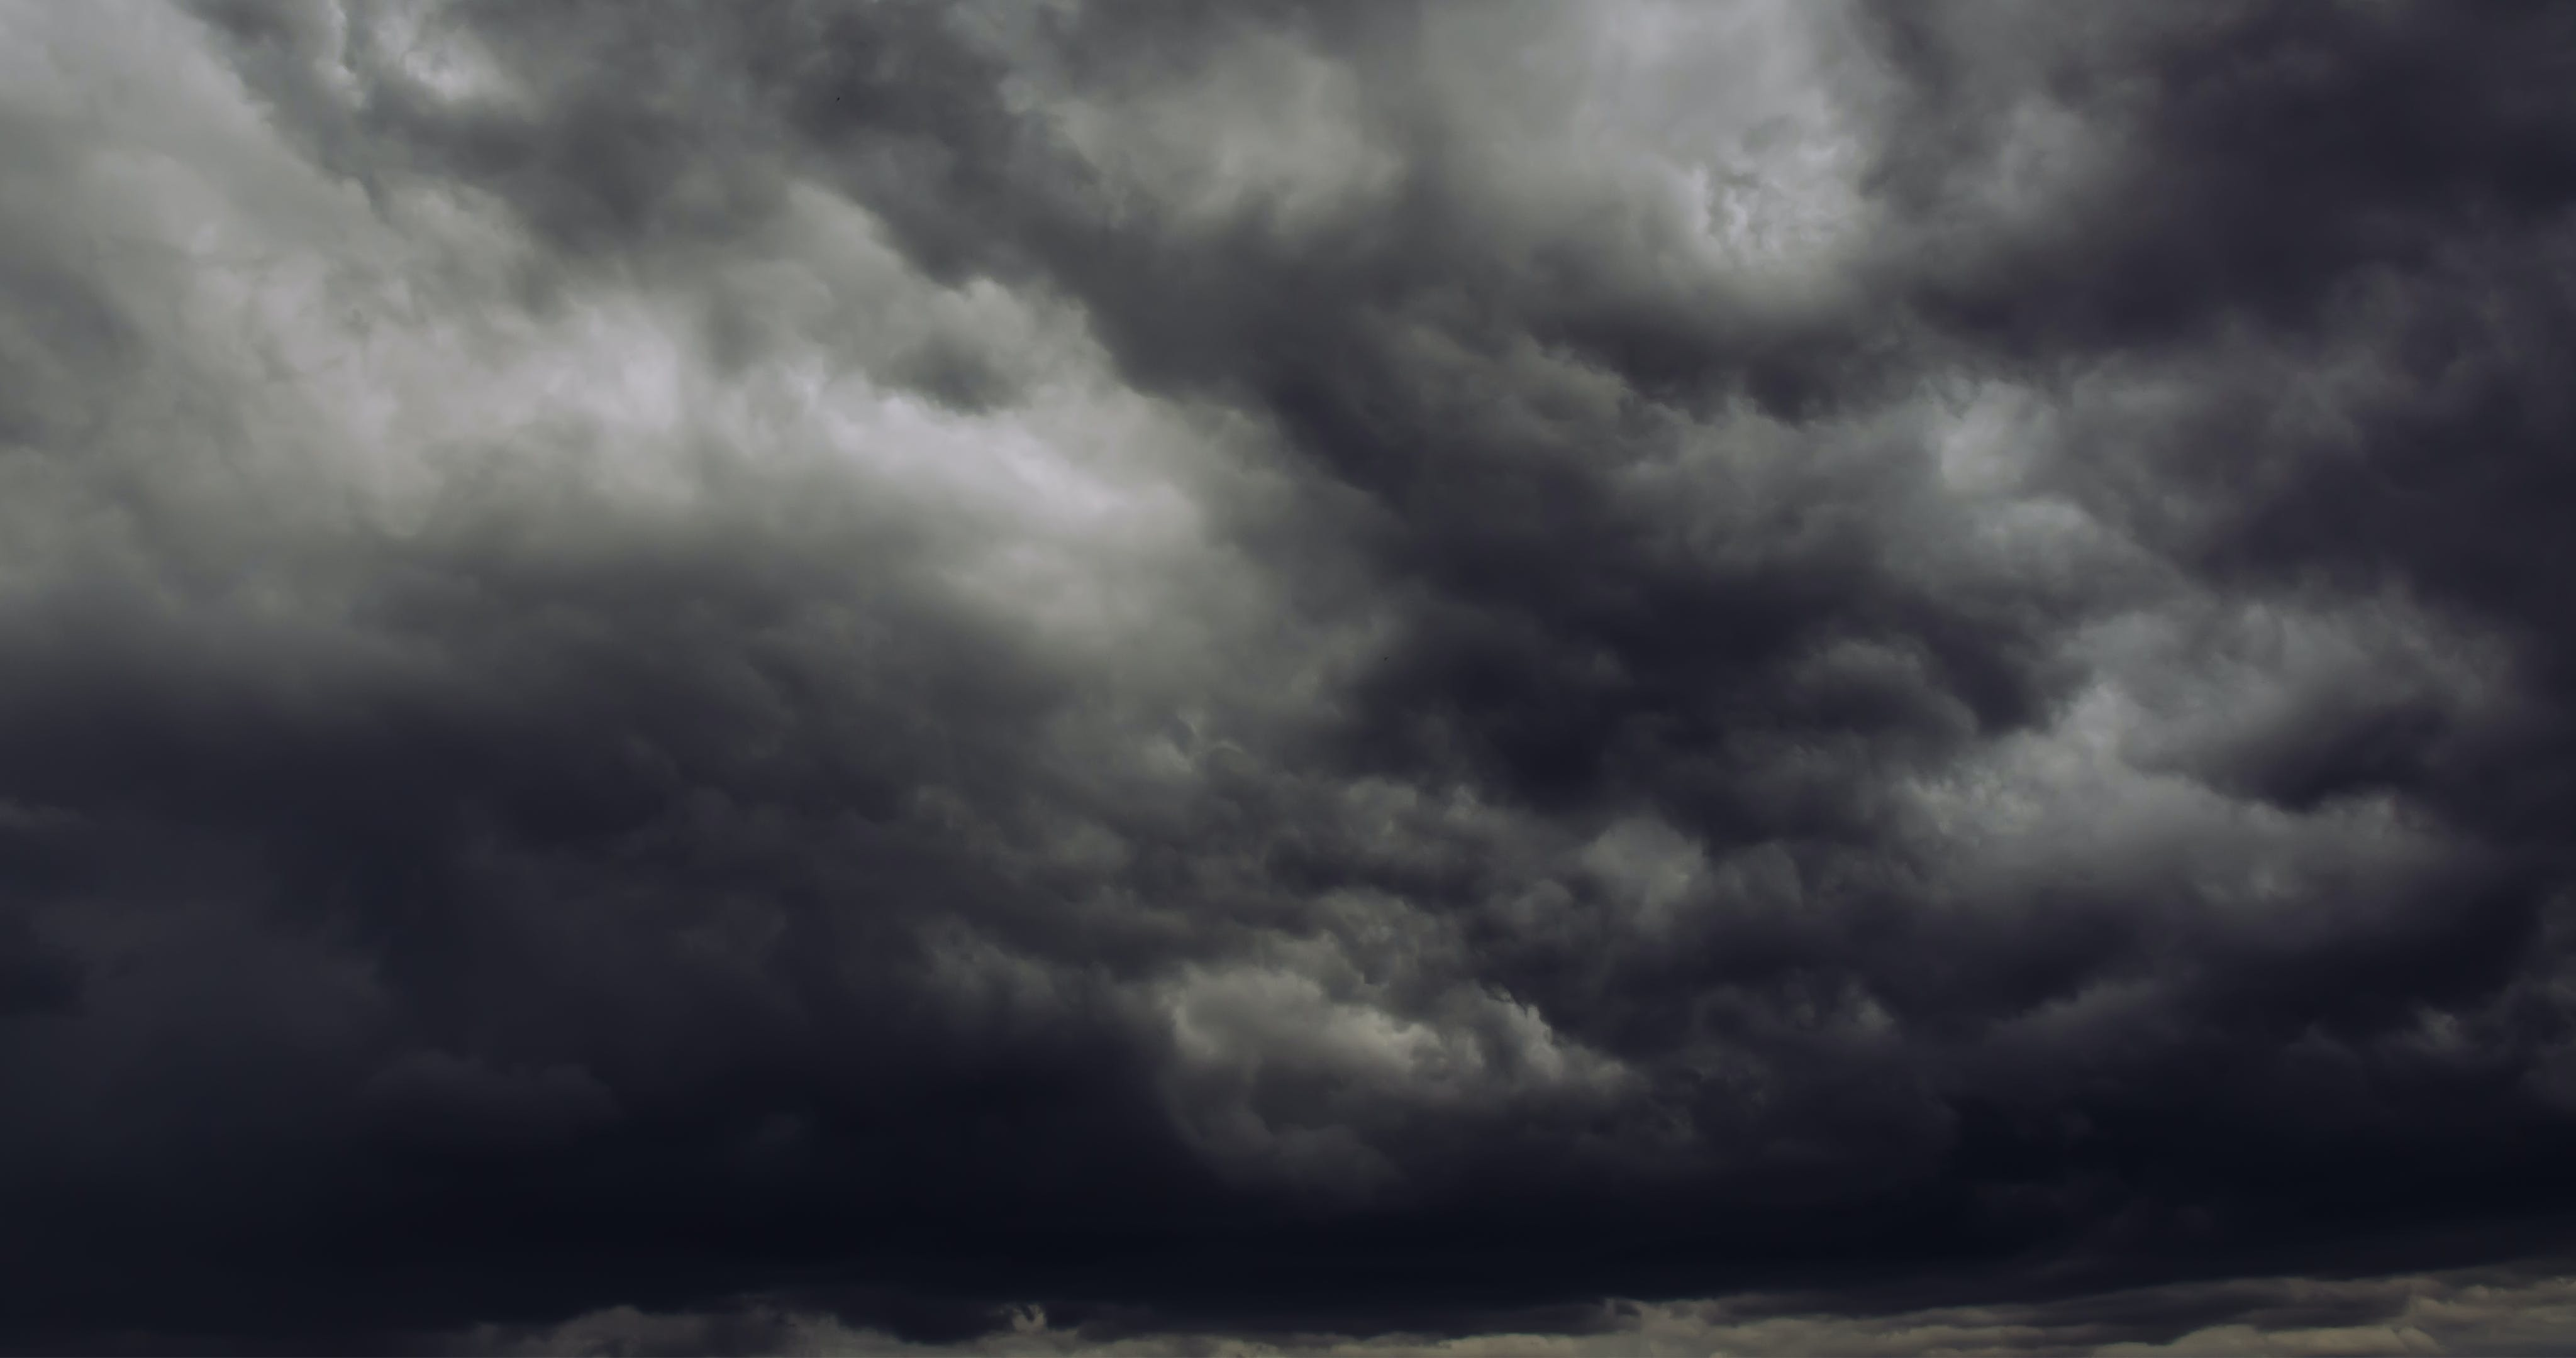 Free stock photo of storm, thunderstorm, dark clouds